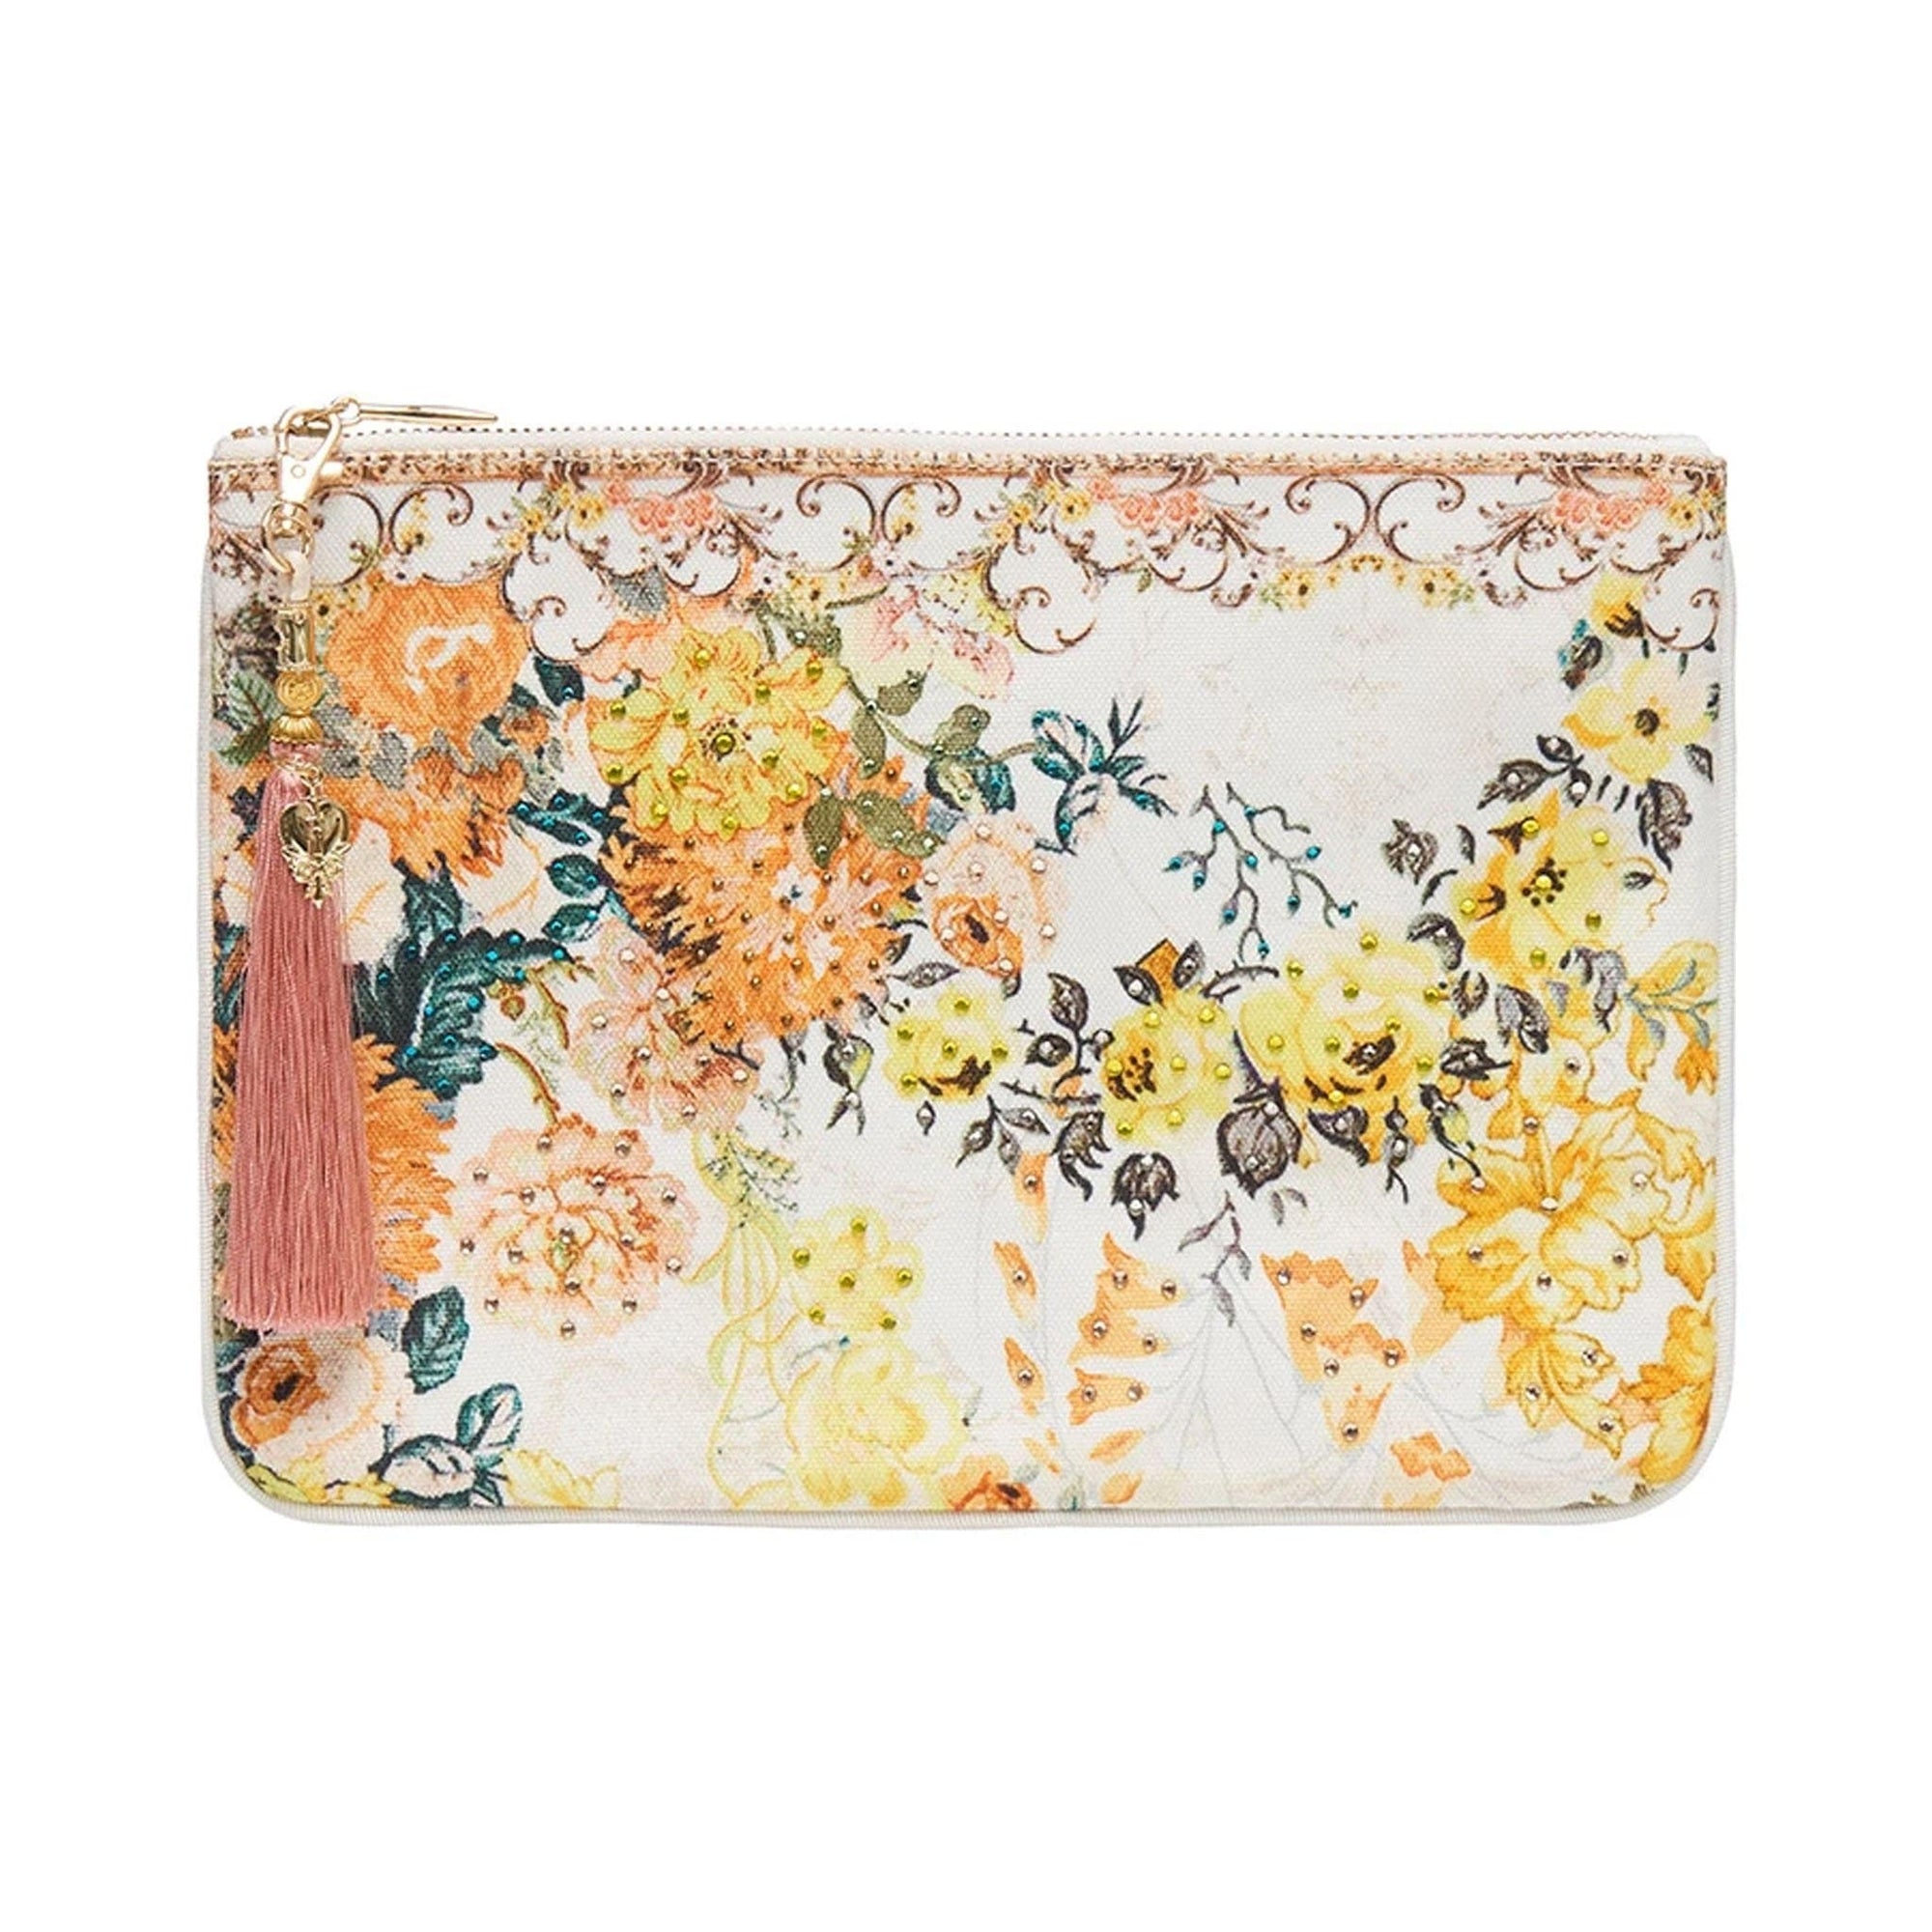 Camilla In the Hills of Tuscany Small Canvas Clutch